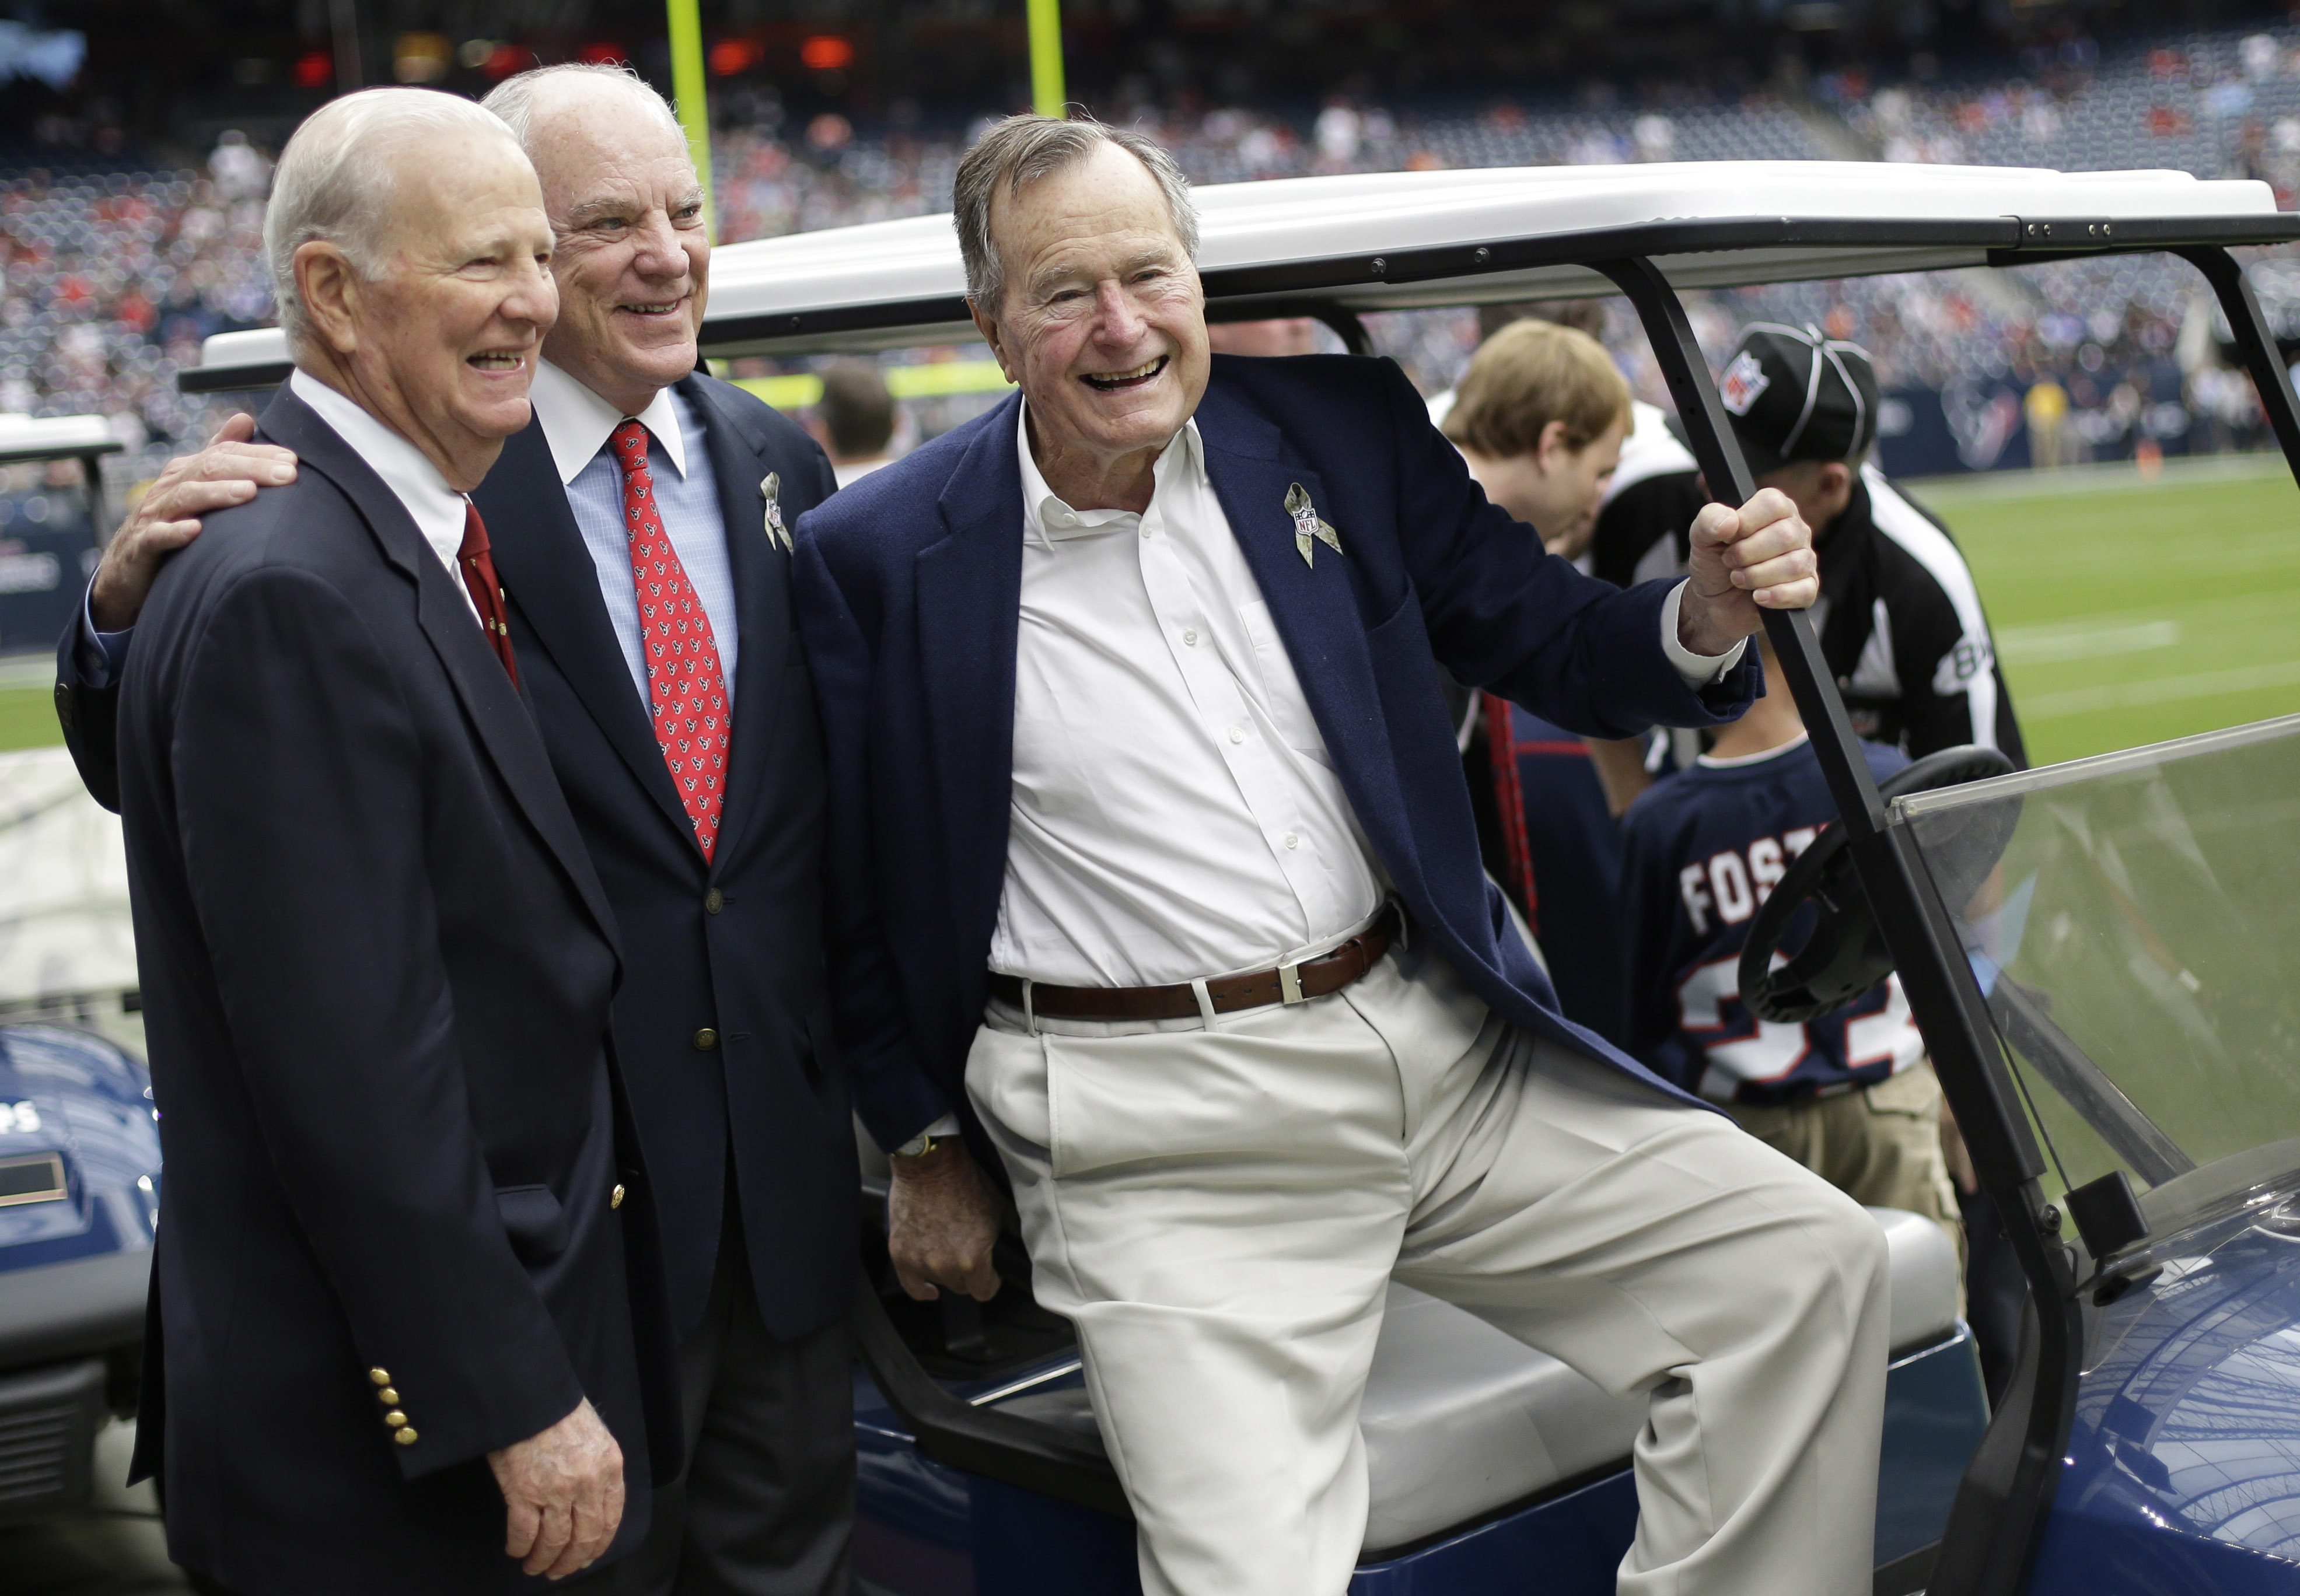 "In this Nov. 4, 2012, photo, former President George H. W. Bush, right, former Secretary of State James Baker, left, and Houston Texans owner Bob McNair pose together before an NFL football game against the Buffalo Bills in Houston. Bush didn't lose his sense of humor even as he was letting go of life. Bush's longtime friend James A. Baker III tells the story of how his wife, Susan, put a hand on the former president's forehead and told him he's loved very much. At which point Baker says Bush ""cocked"" open an eye and quipped, ""Well, you better hurry."" Bush died Friday at age 94. (AP Photo/Eric Gay)"